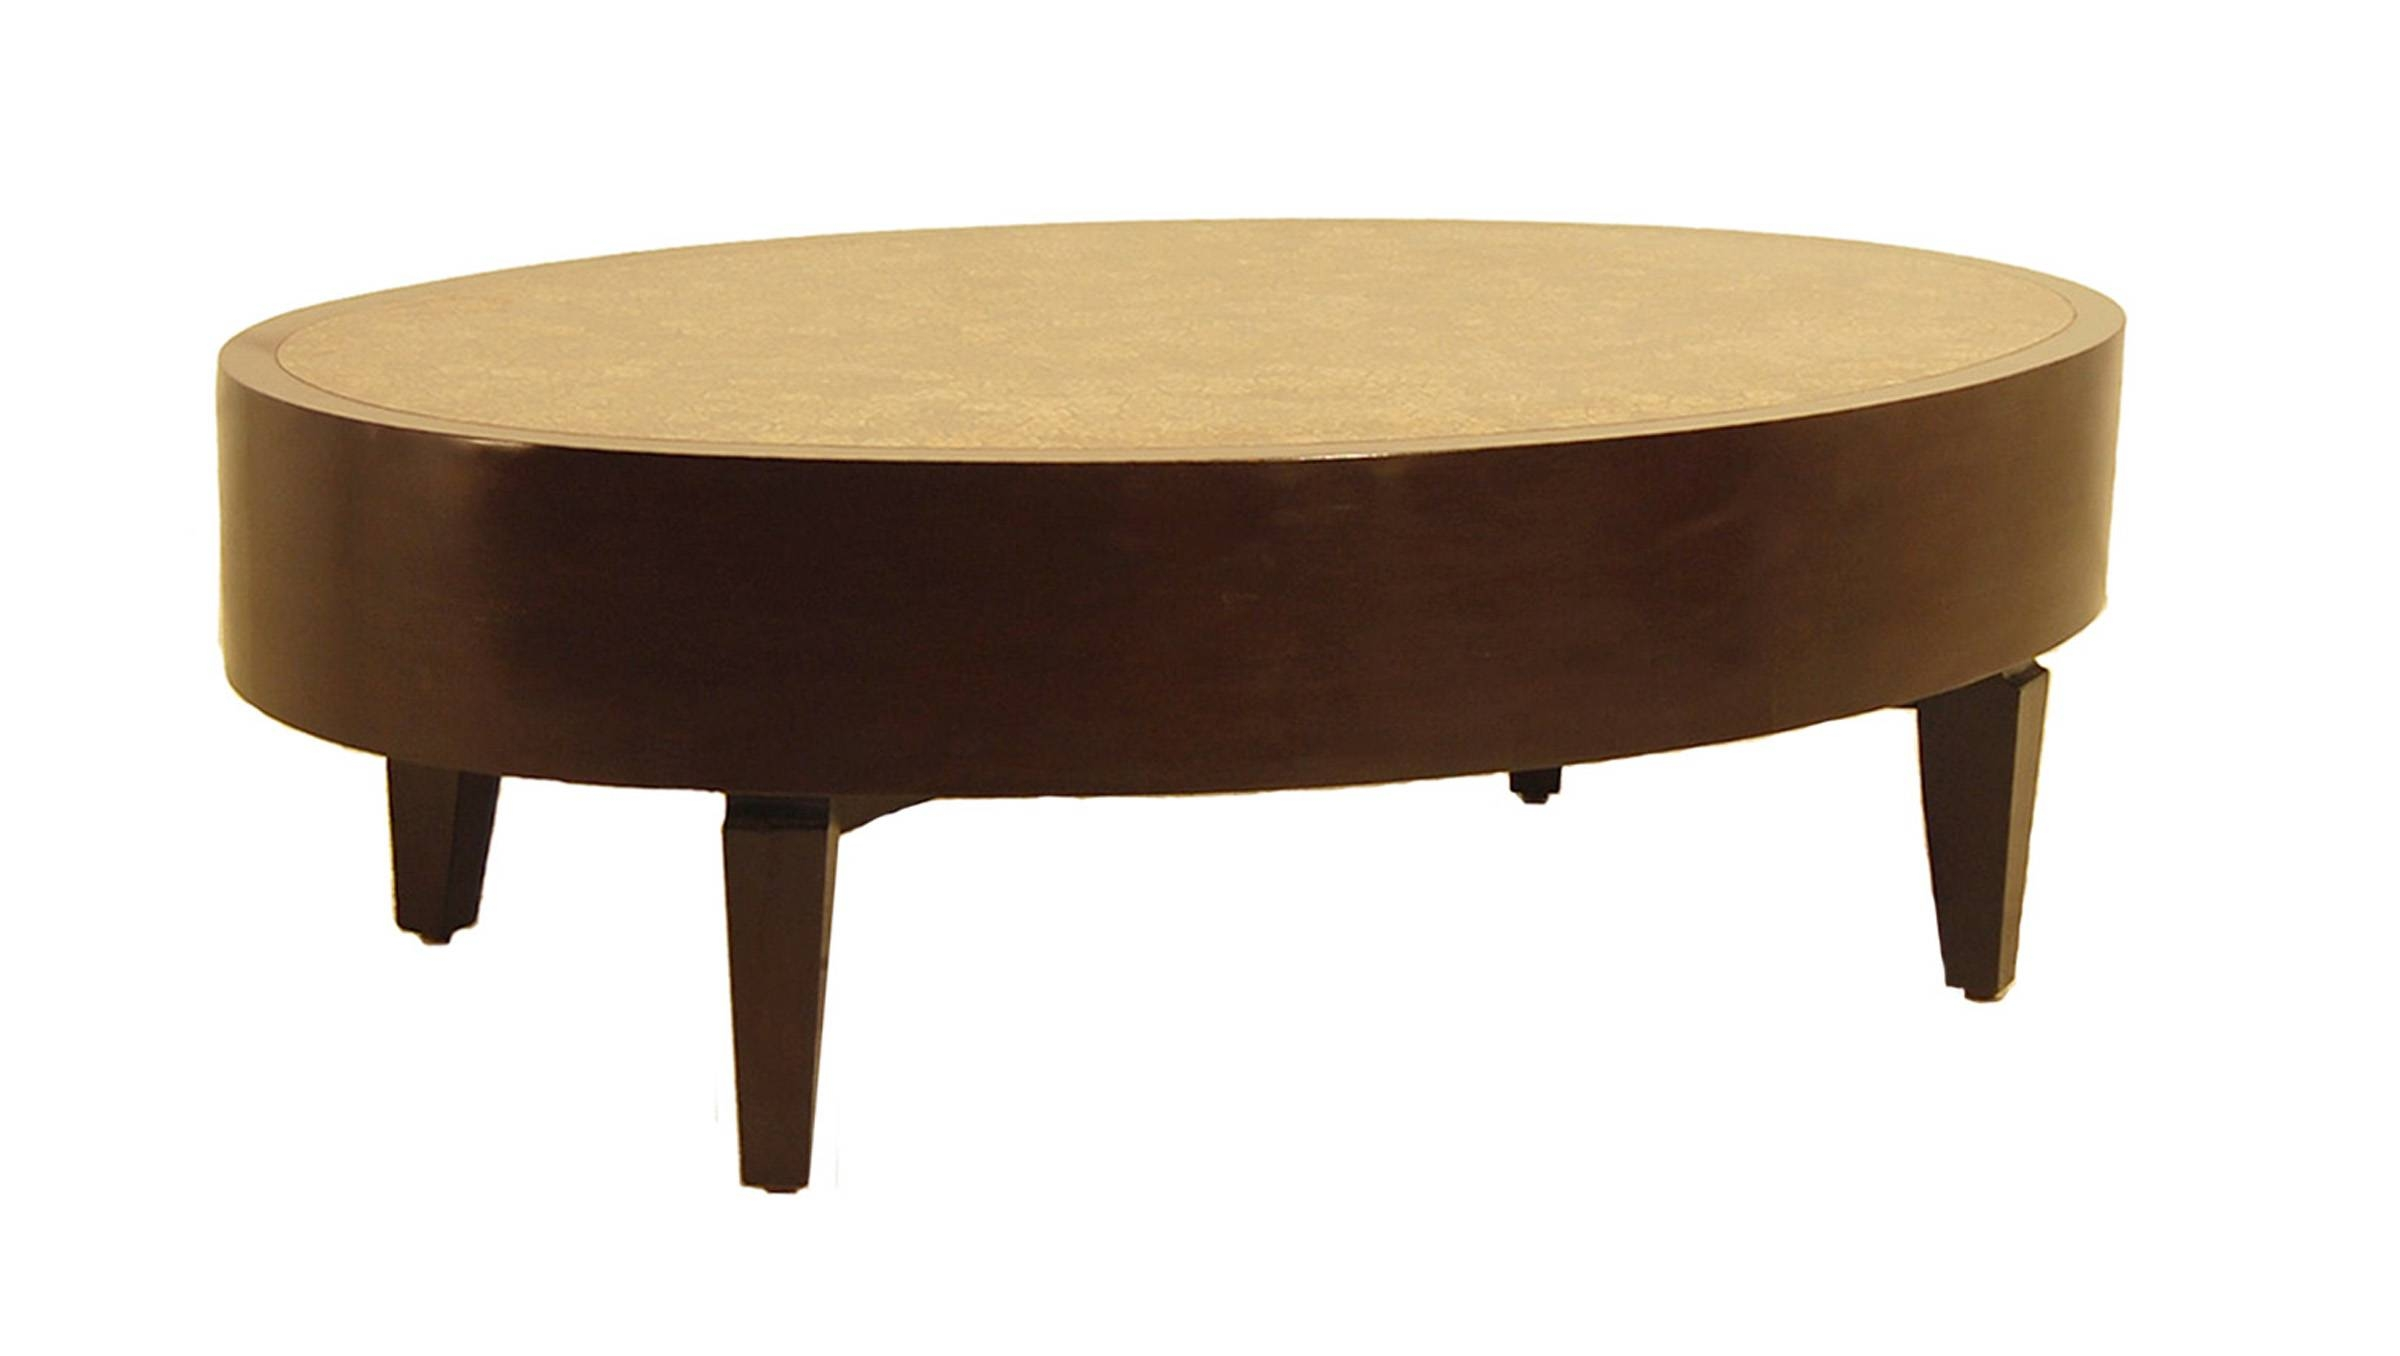 Fong Brothers Co. | Coffee Tables regarding Oval Wood Coffee Tables (Image 11 of 30)